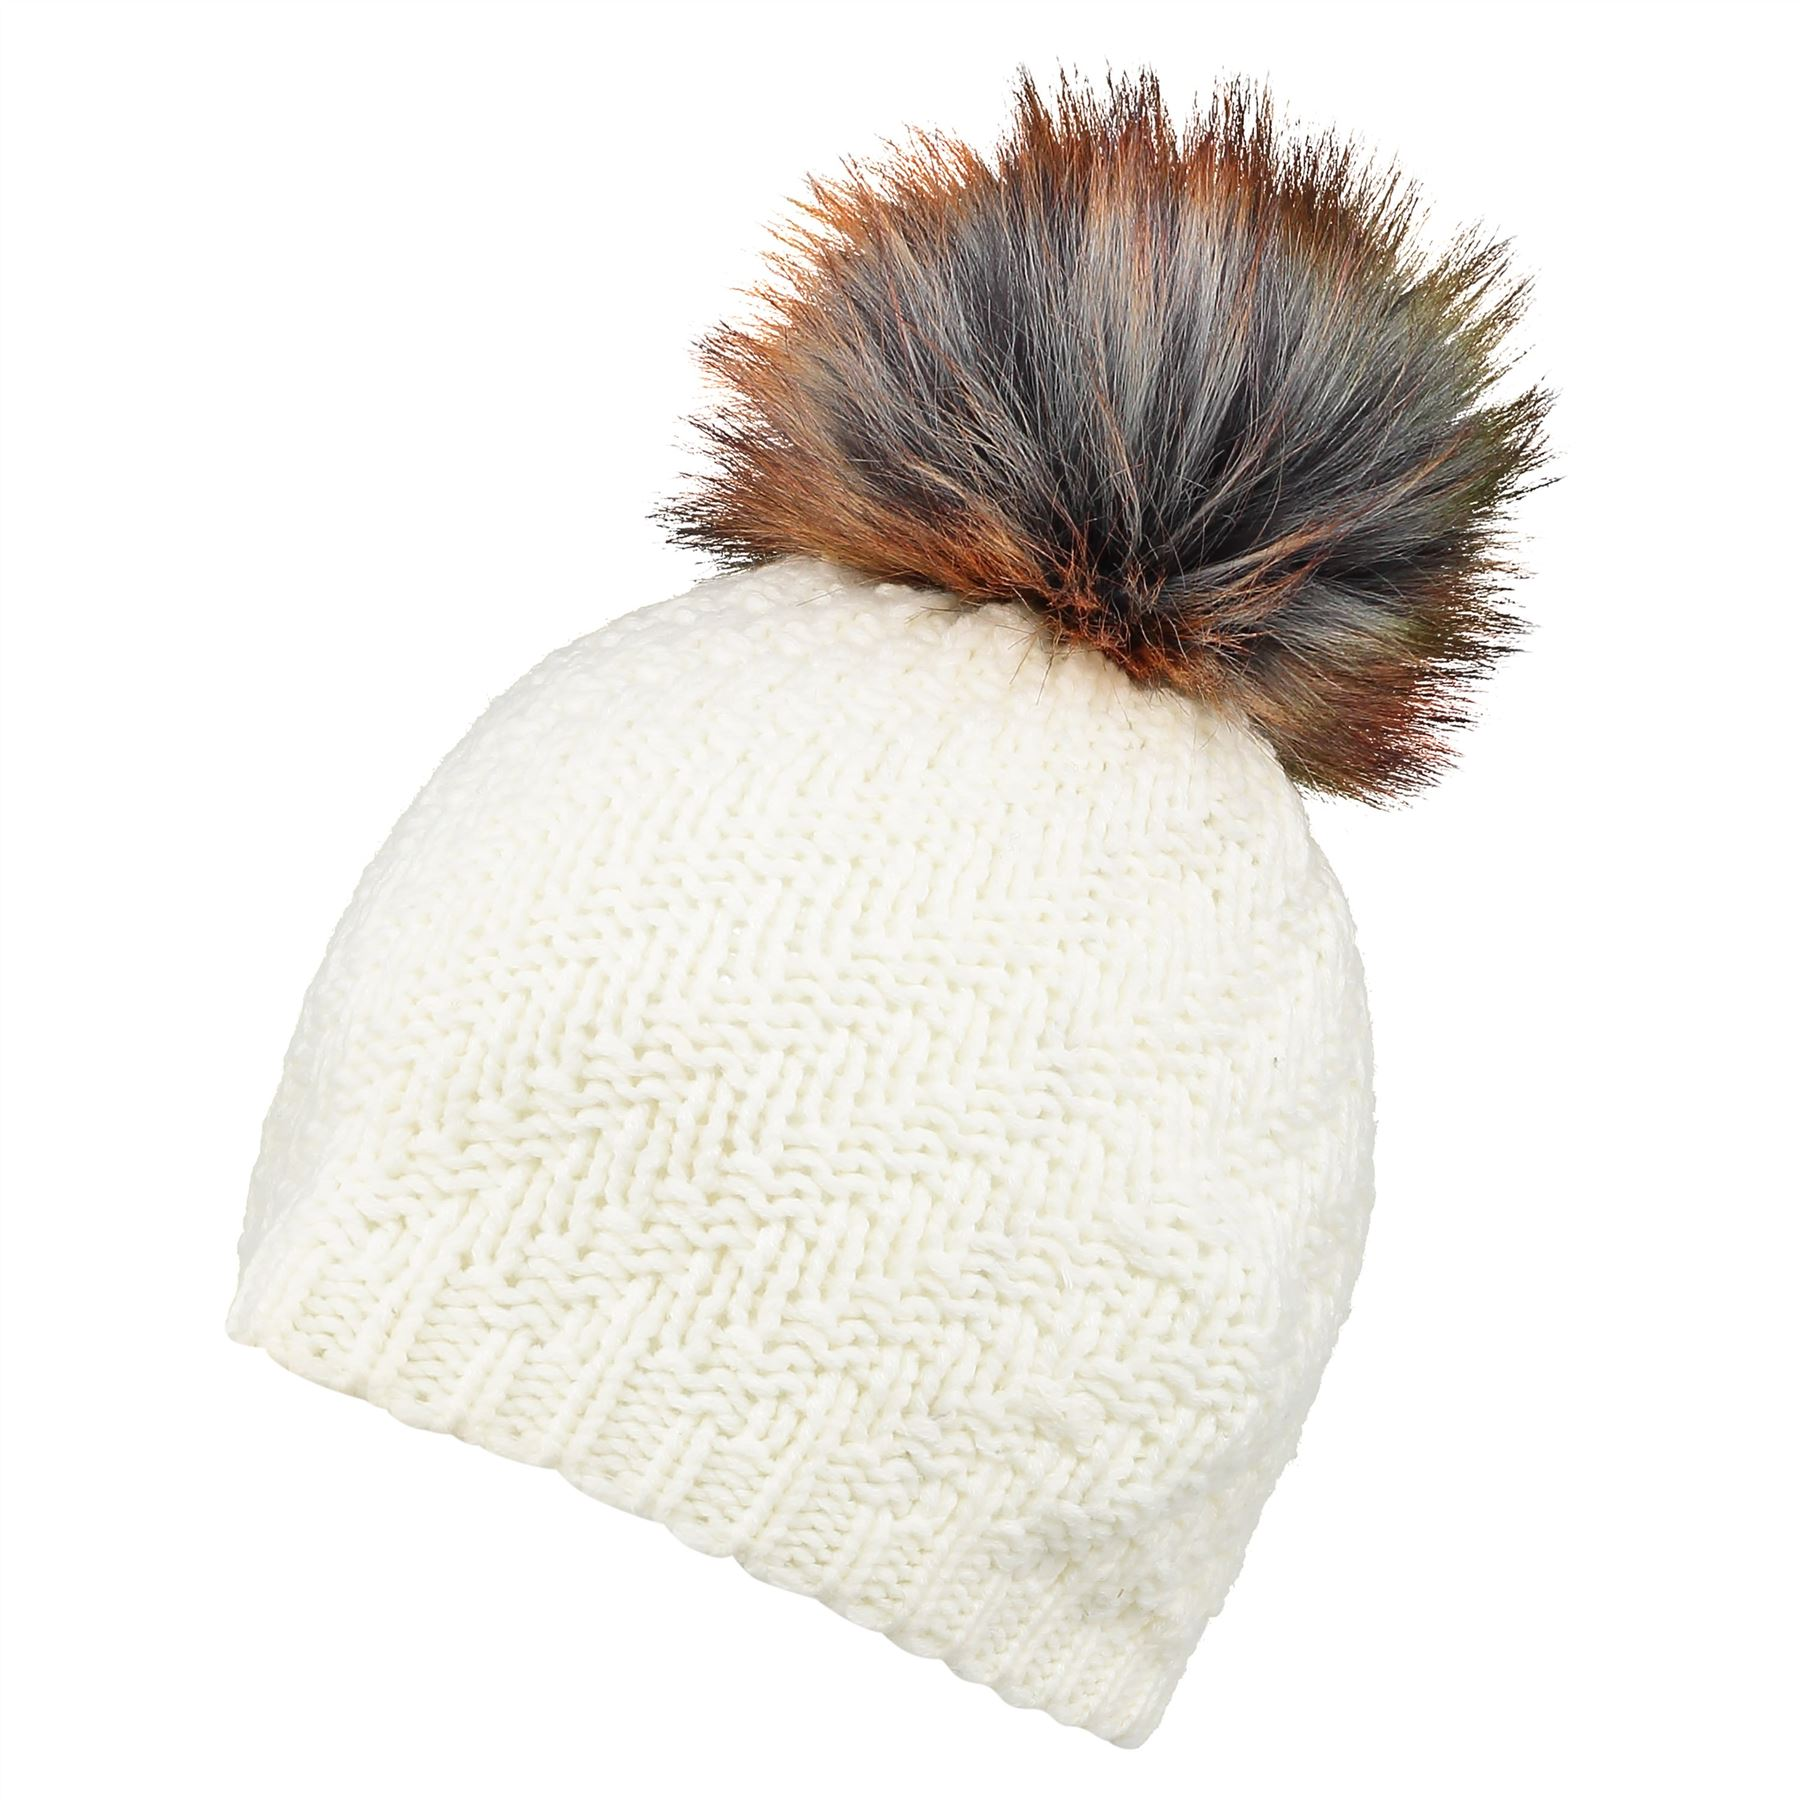 Image of Faux Fur Pom Beanie Hat - Classic Cream - One Size